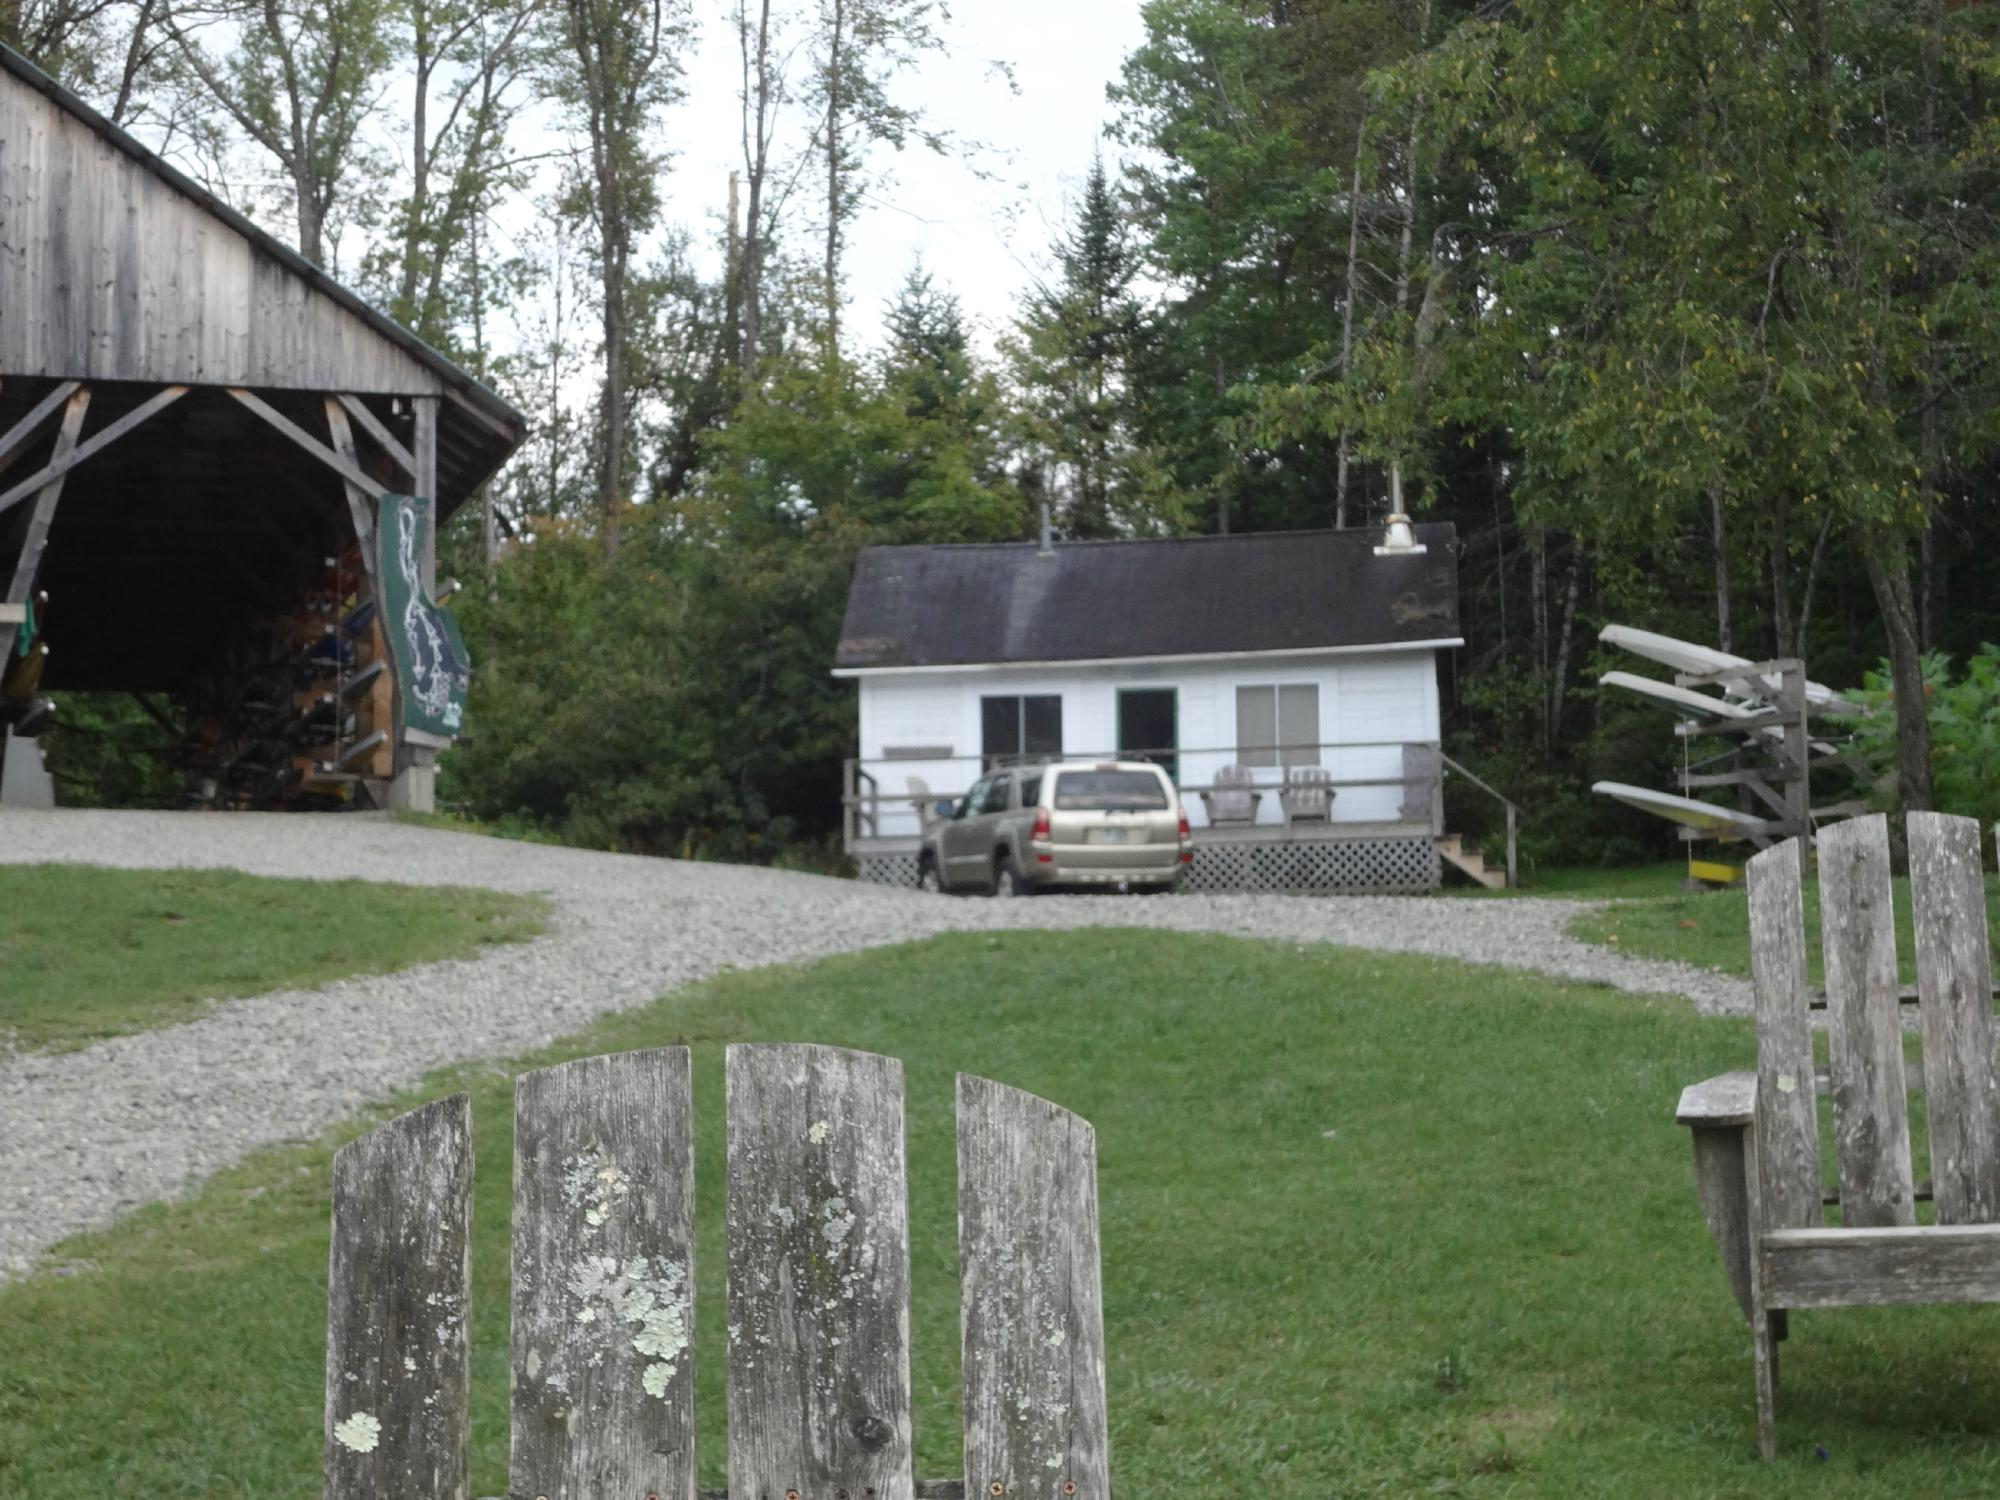 Craftsbury Outdoor Center